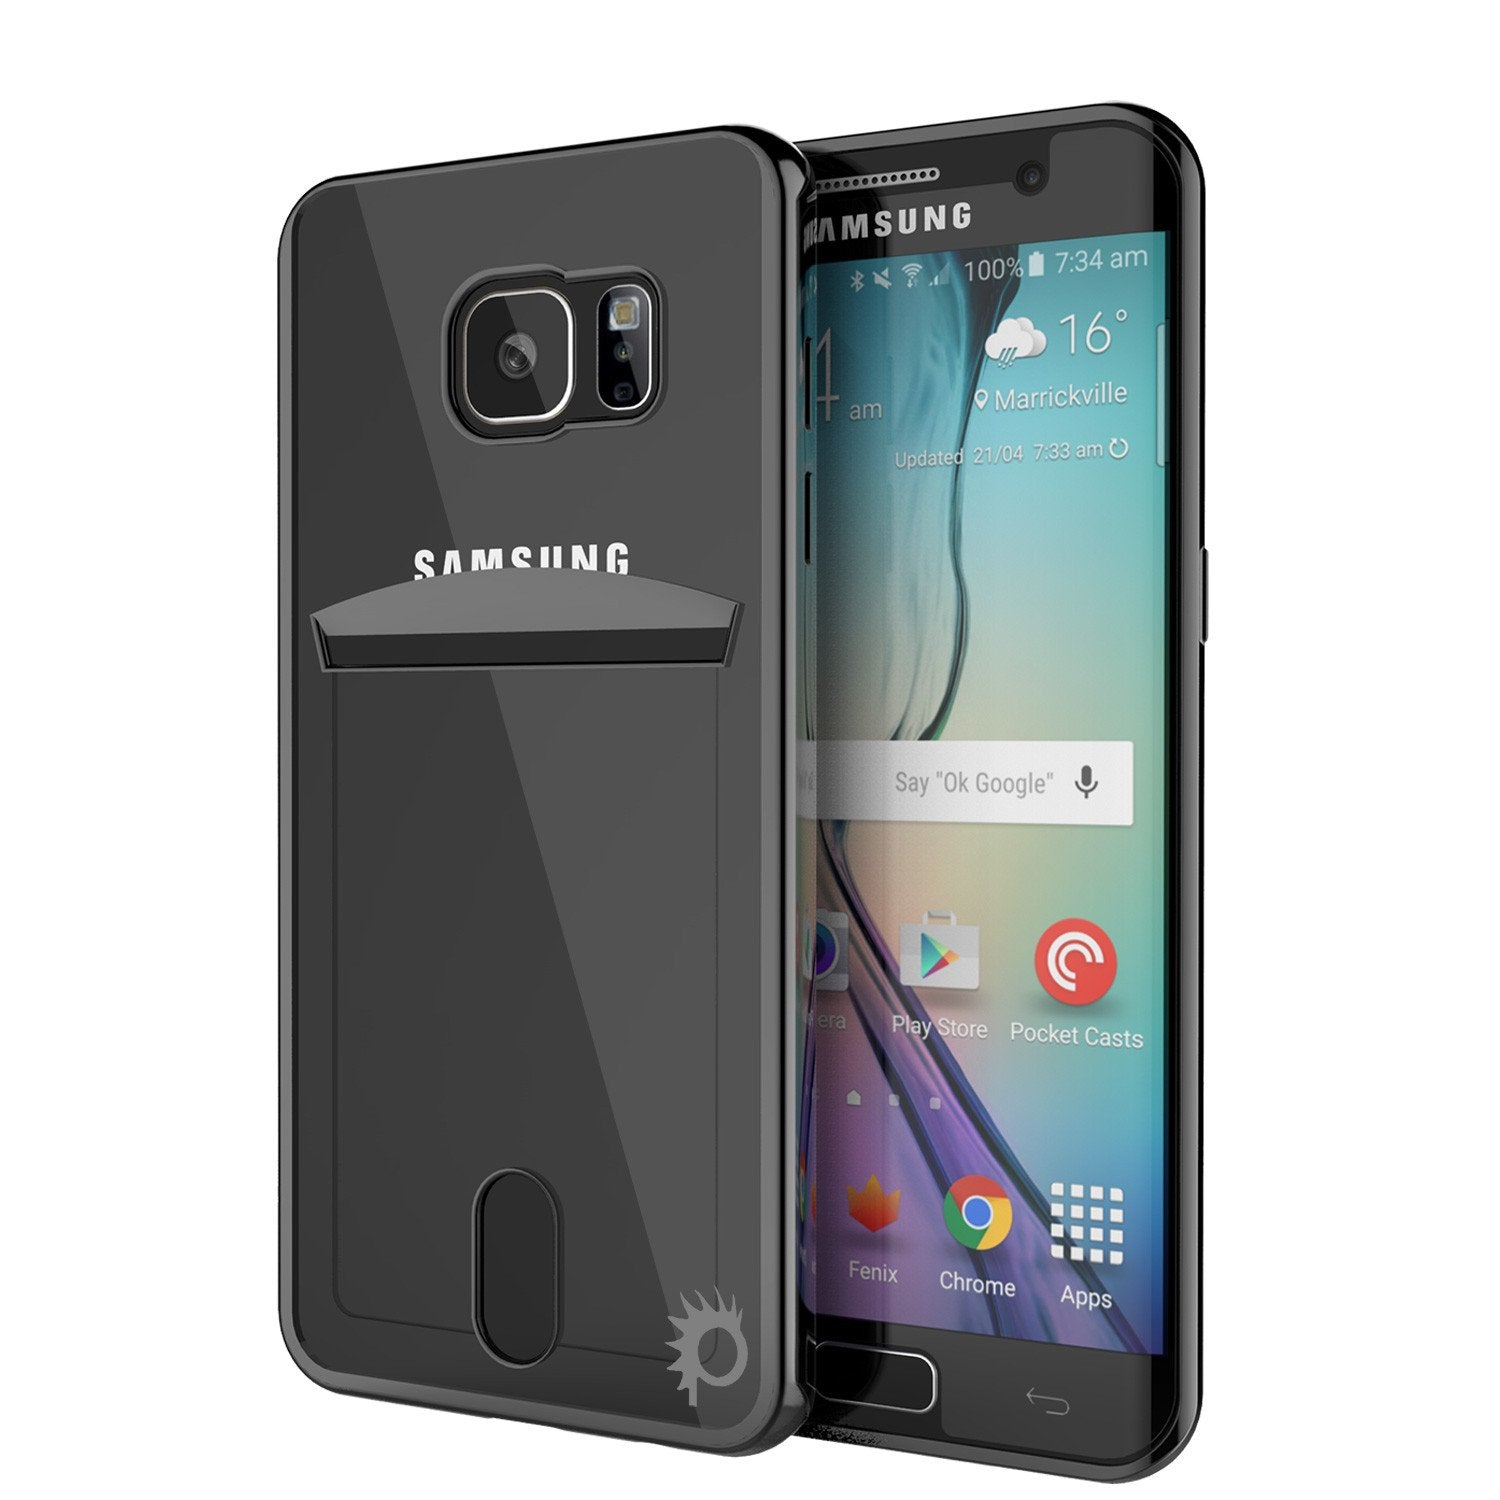 Galaxy S6 EDGE+ Plus Case, PUNKCASE® LUCID Black Series | Card Slot | SHIELD Screen Protector - PunkCase NZ